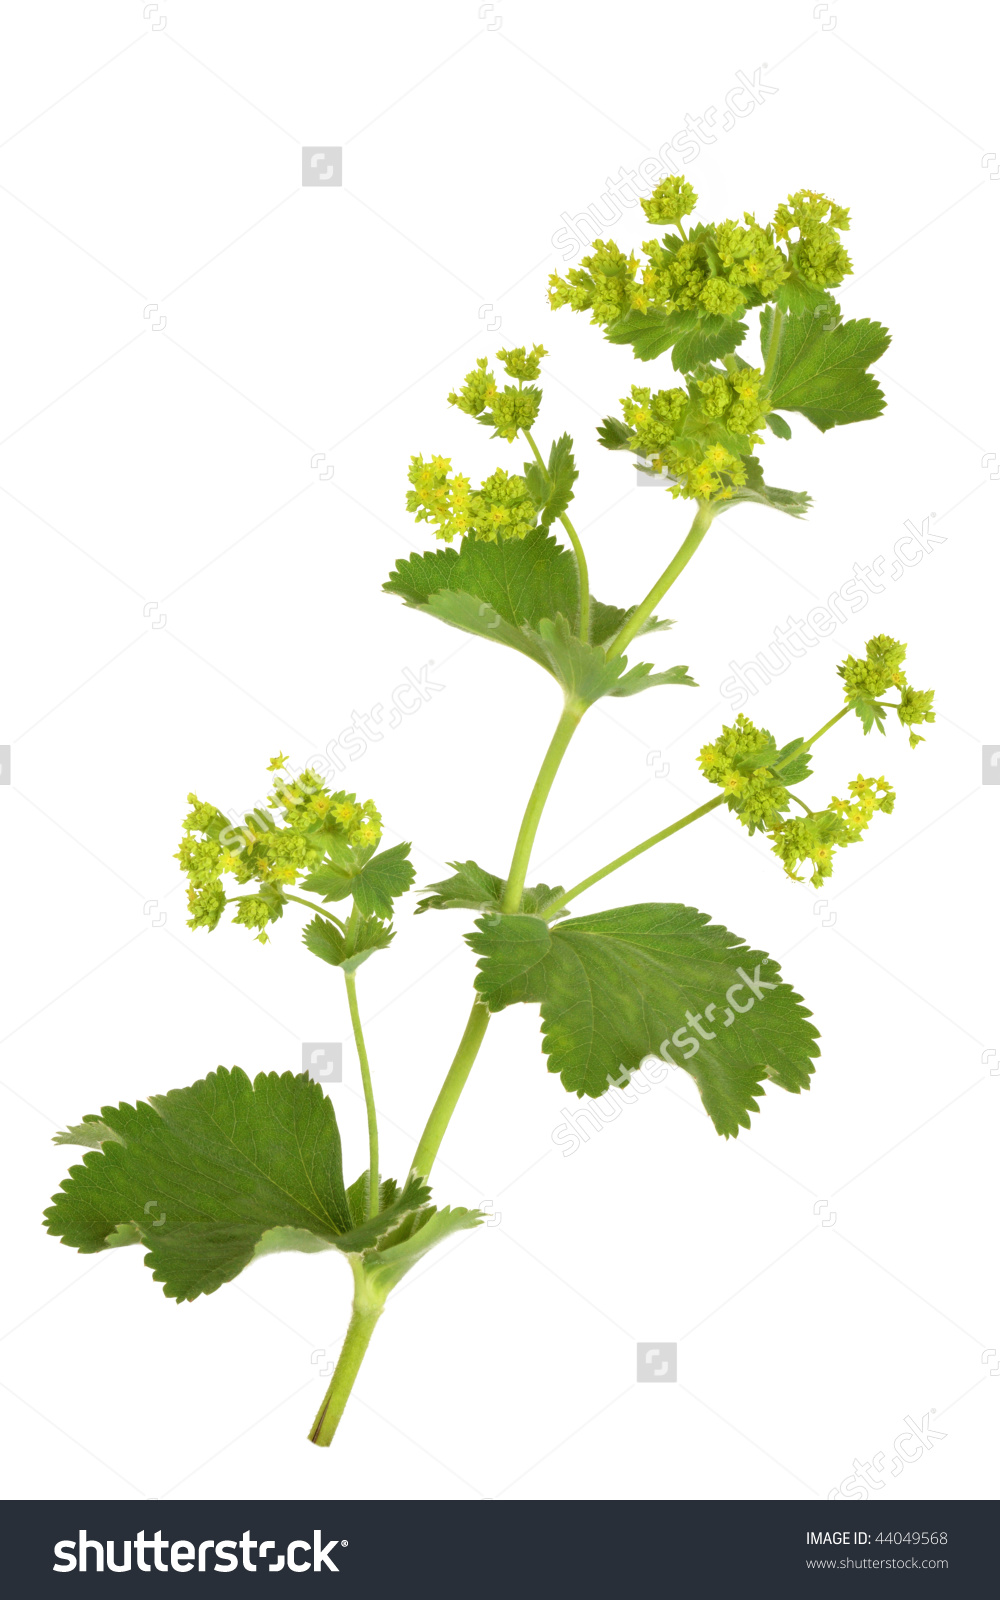 Ladys Mantle Herb Flowers Isolated Over Stock Photo 44049568.